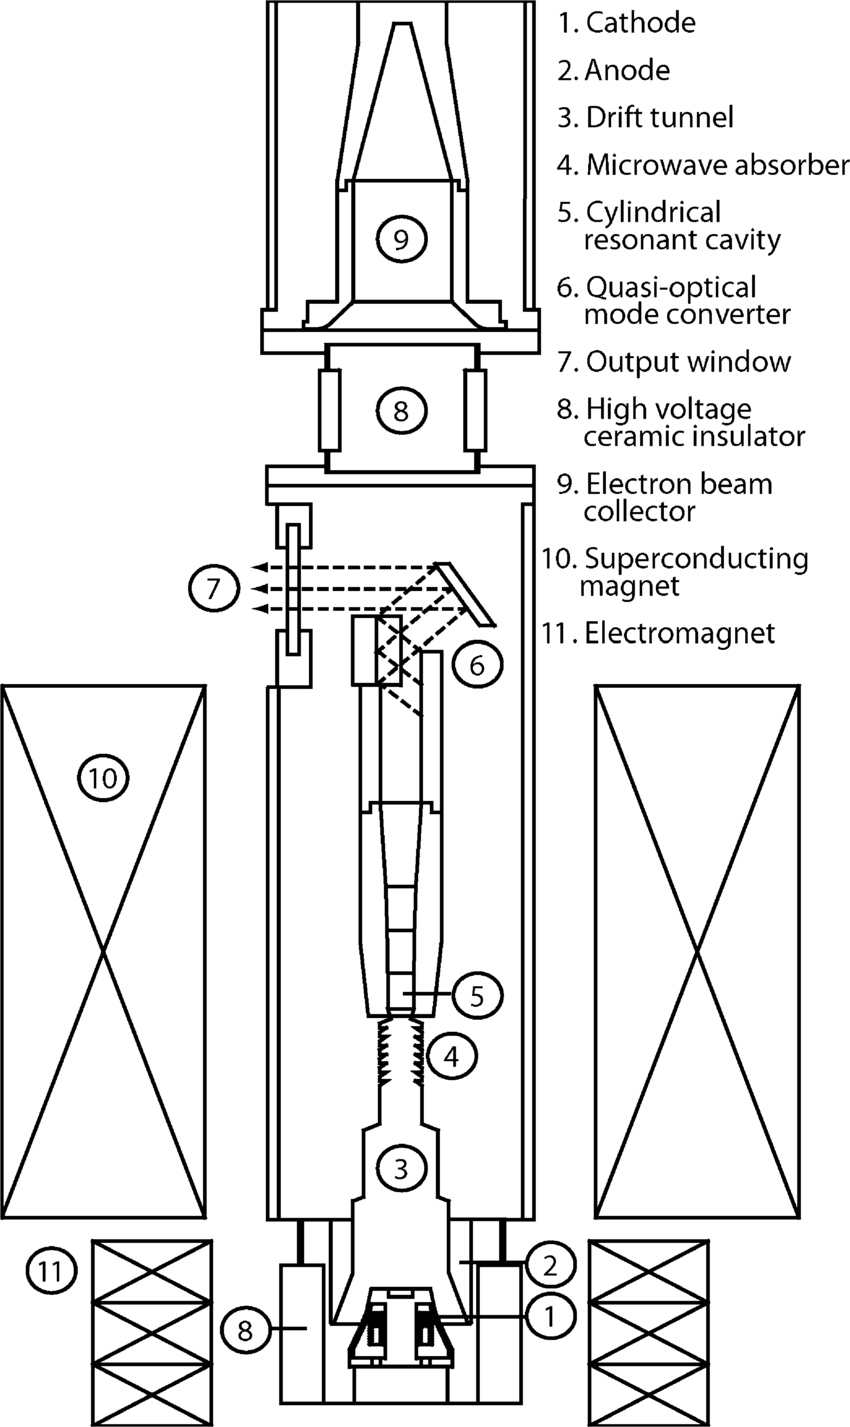 Cross-sectional schematic of a typical cylindrically